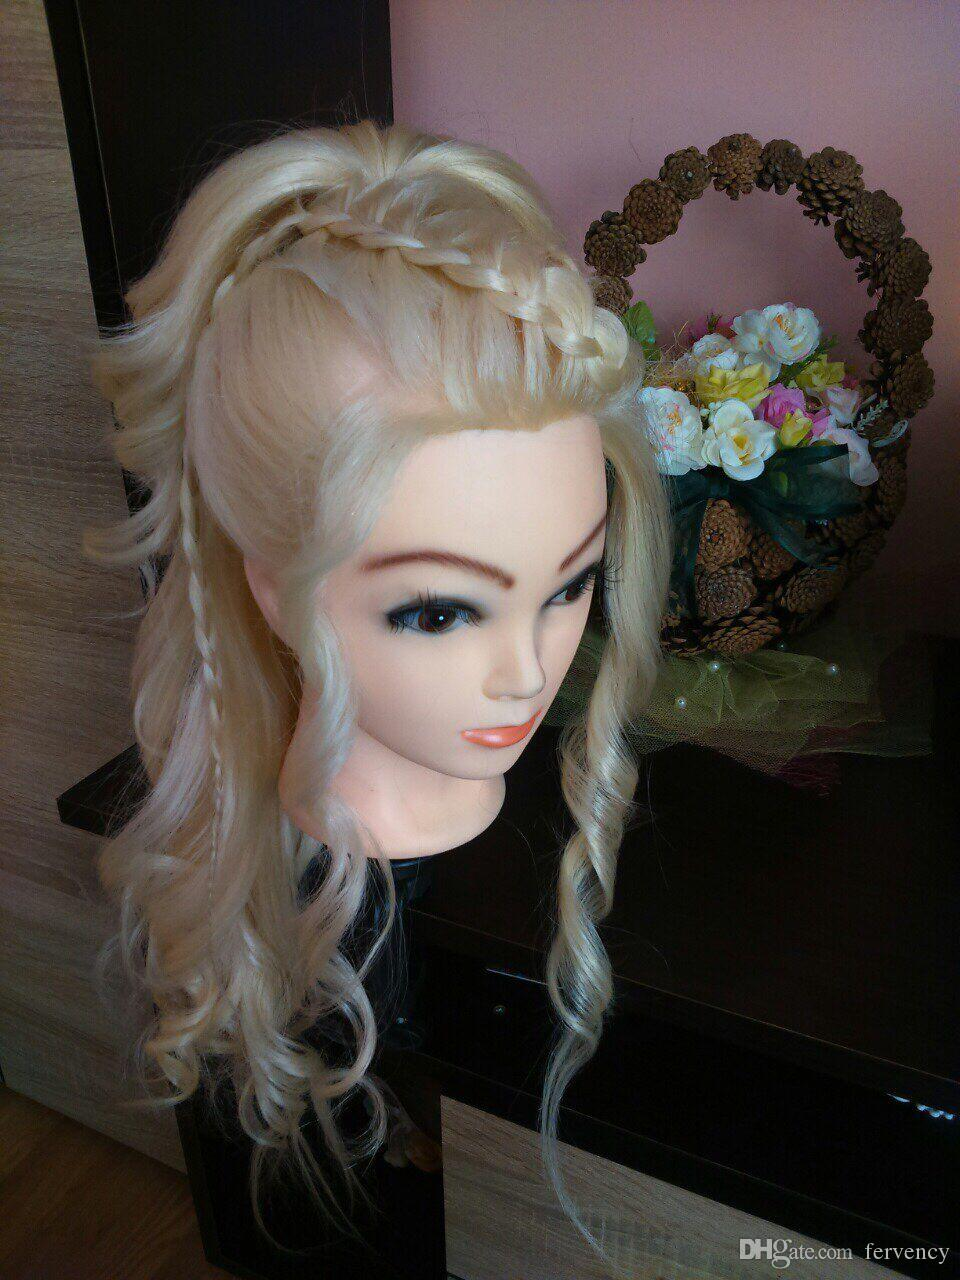 40 % Real Human Hair 60 cm Training Head For Salon Hairdressing Mannequin Dolls professional styling head can be curled